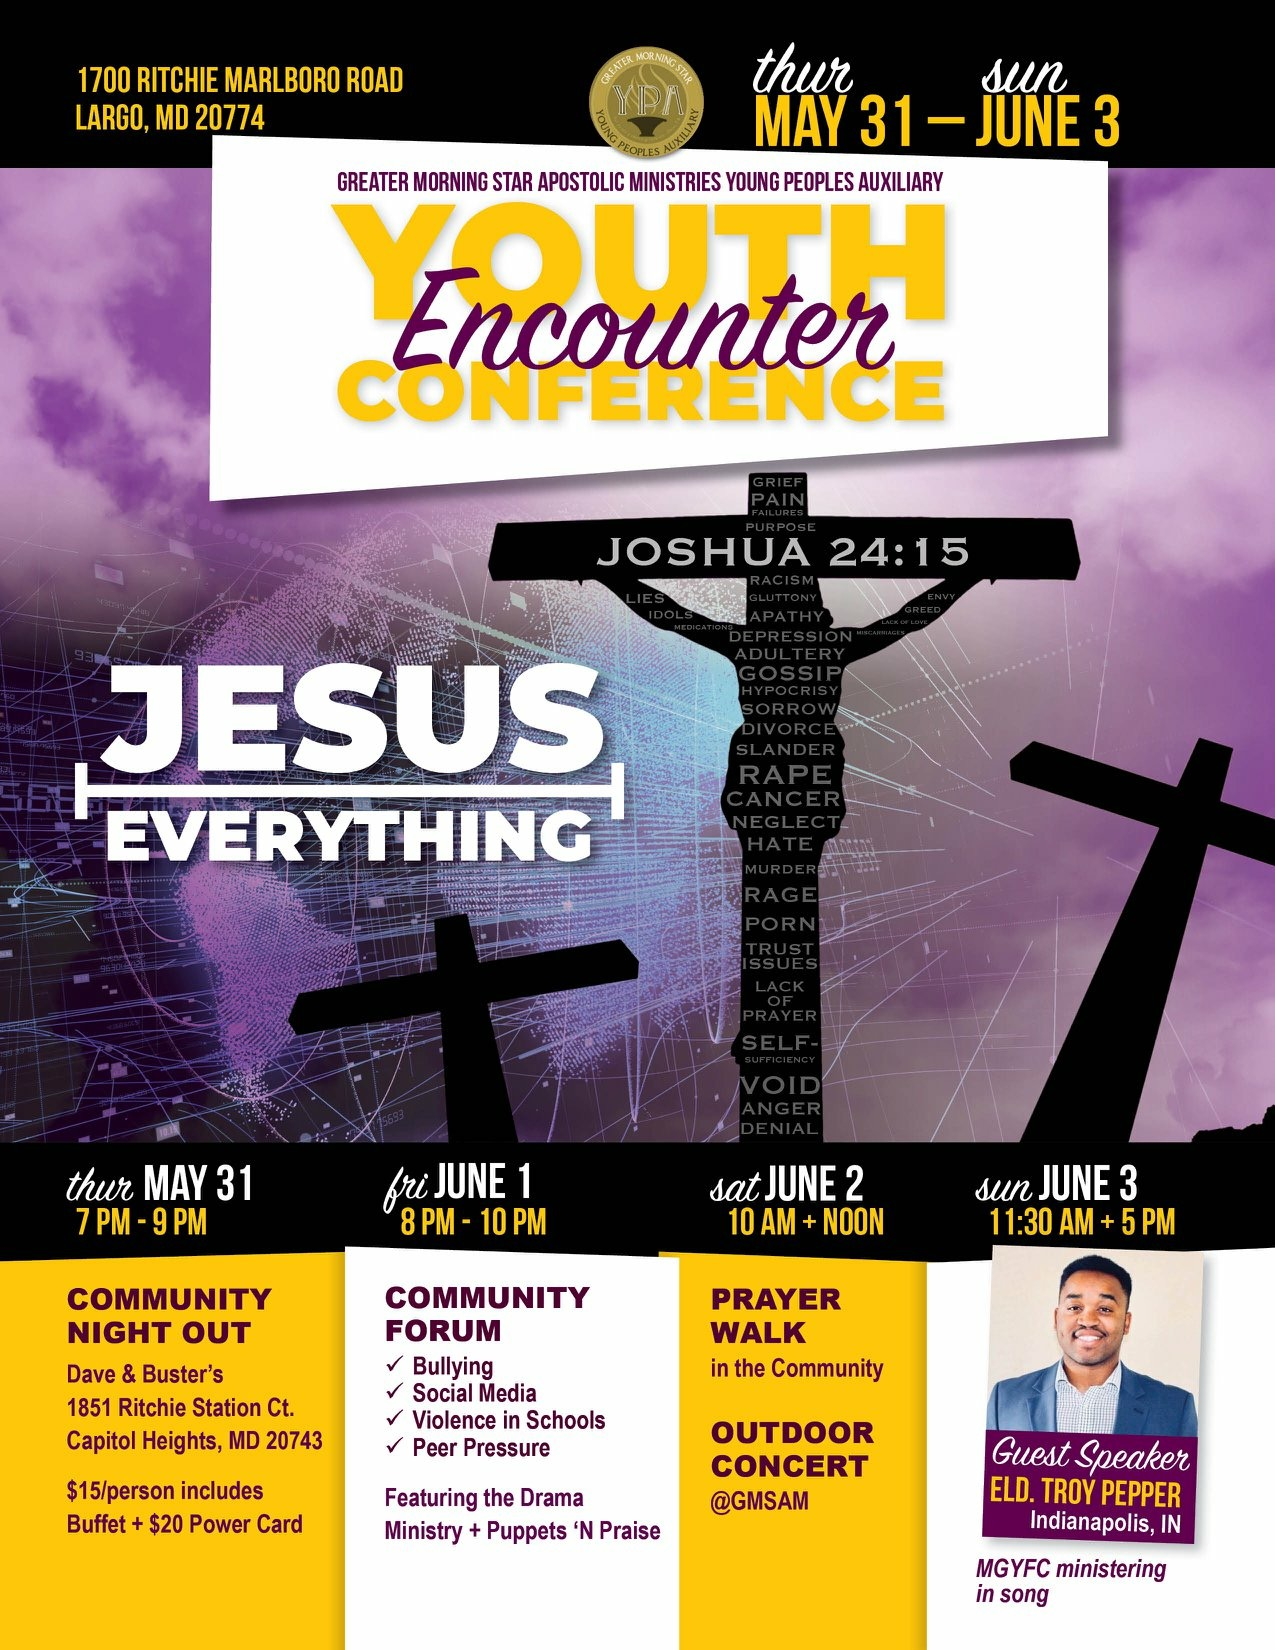 Youth Encounter Conference Flyer